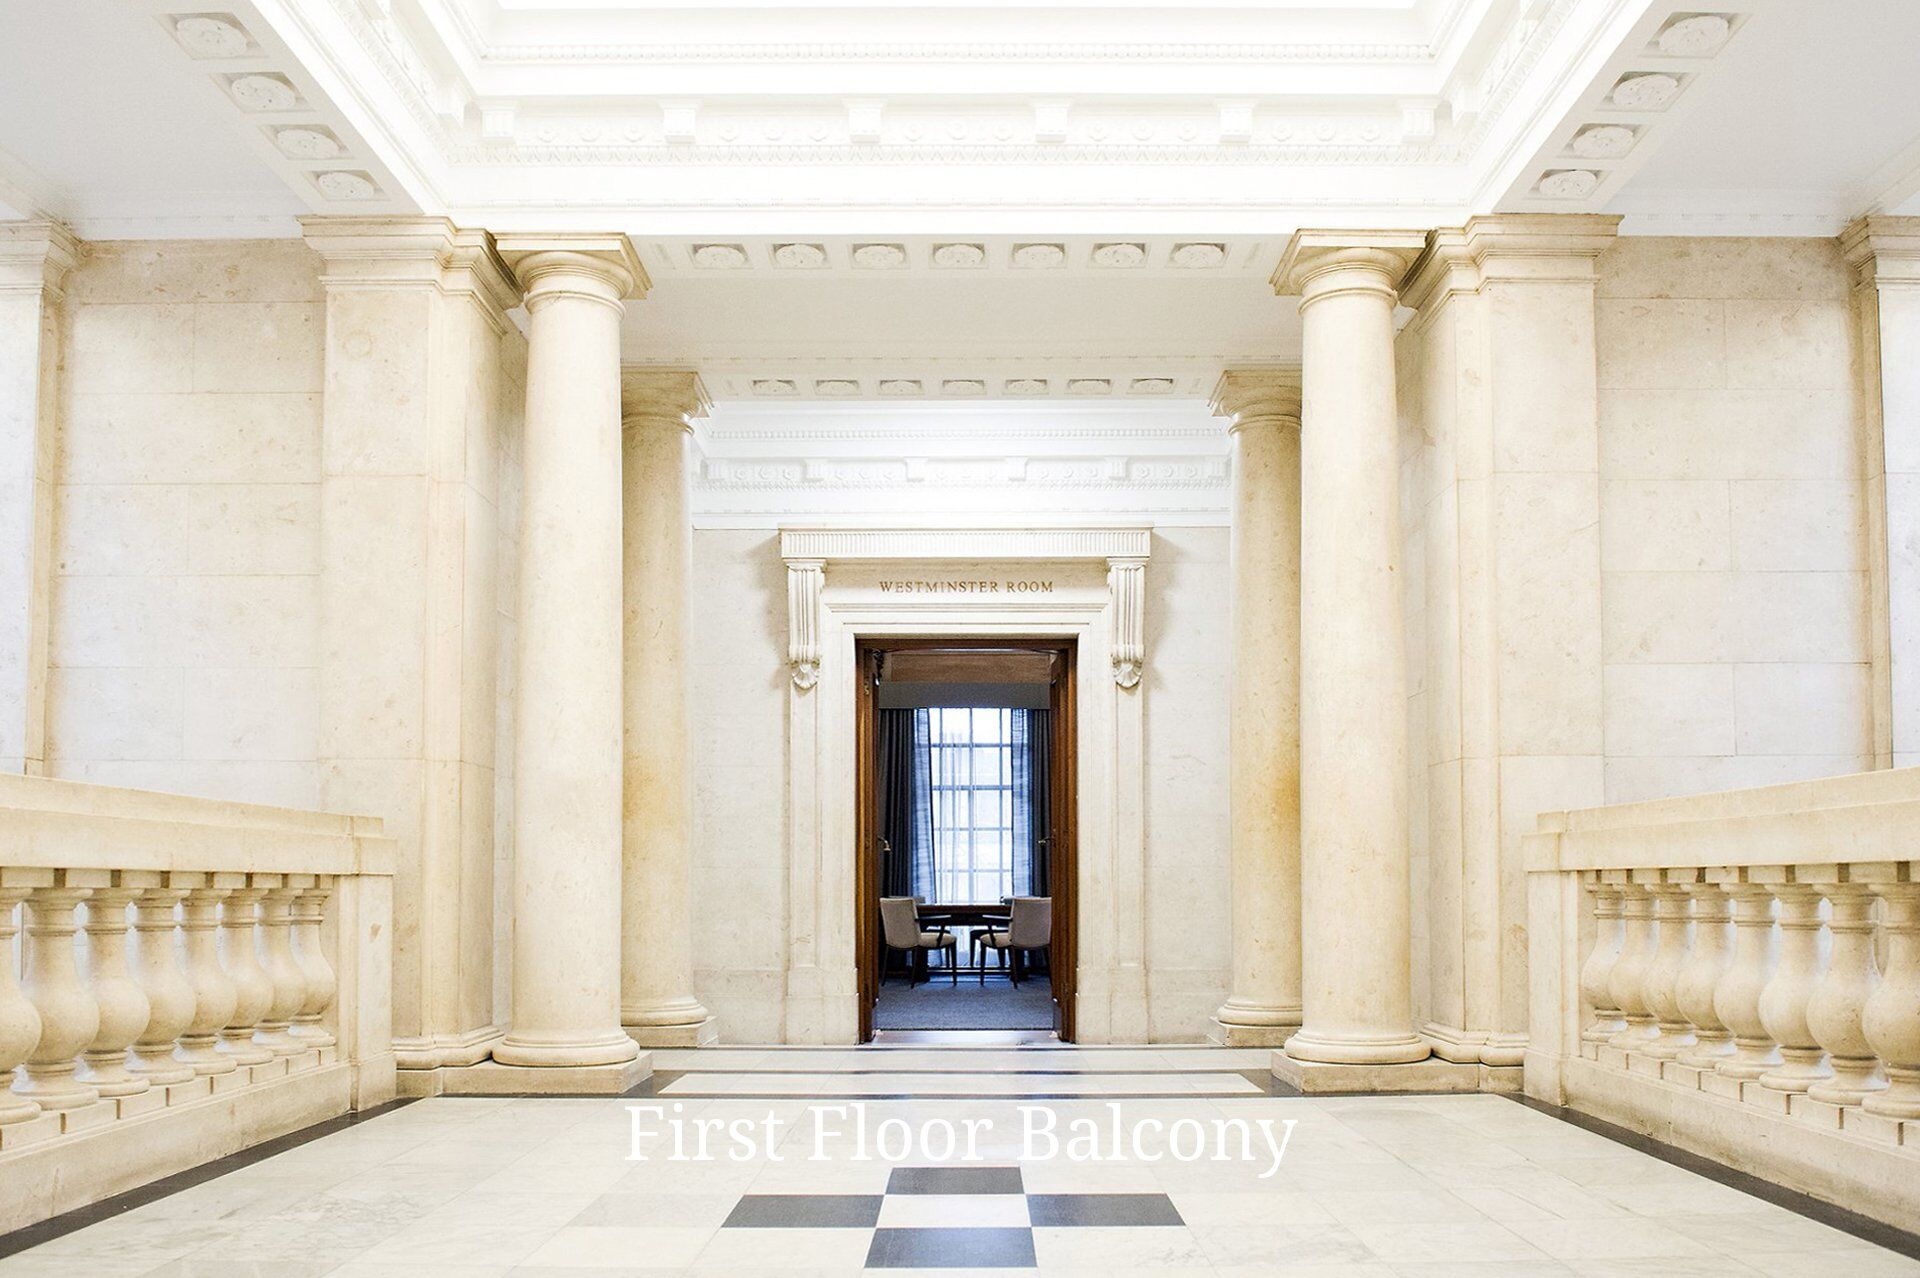 First floor of Old Marylebone Town Hall looking towards the largest ceremony room, the Westminster Room which holds up to 98 guests